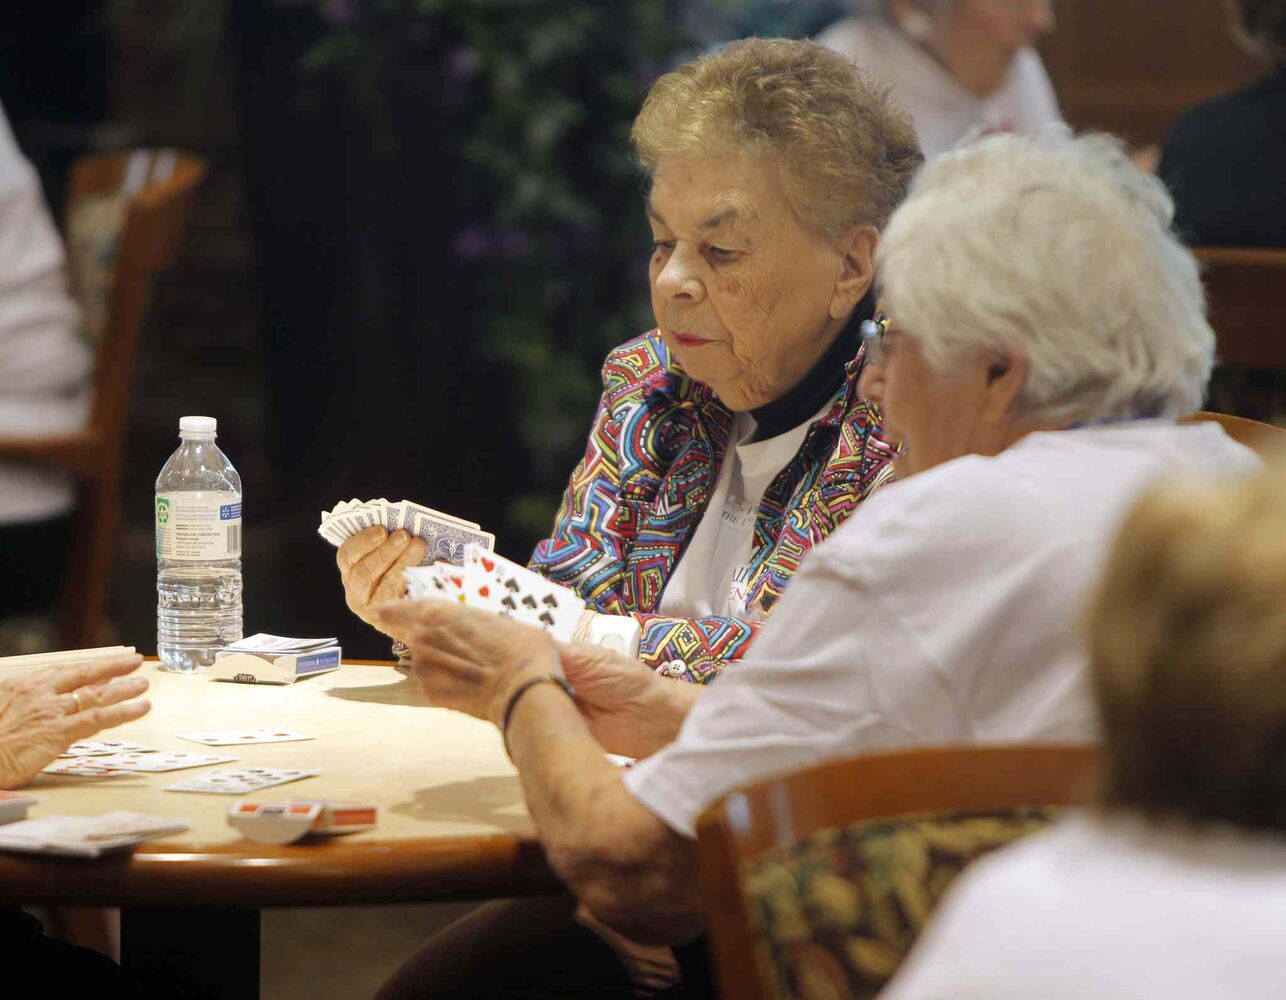 A pair of residents look at their cards at Shaftesbury Park Retirement Residence during a game of bridge.